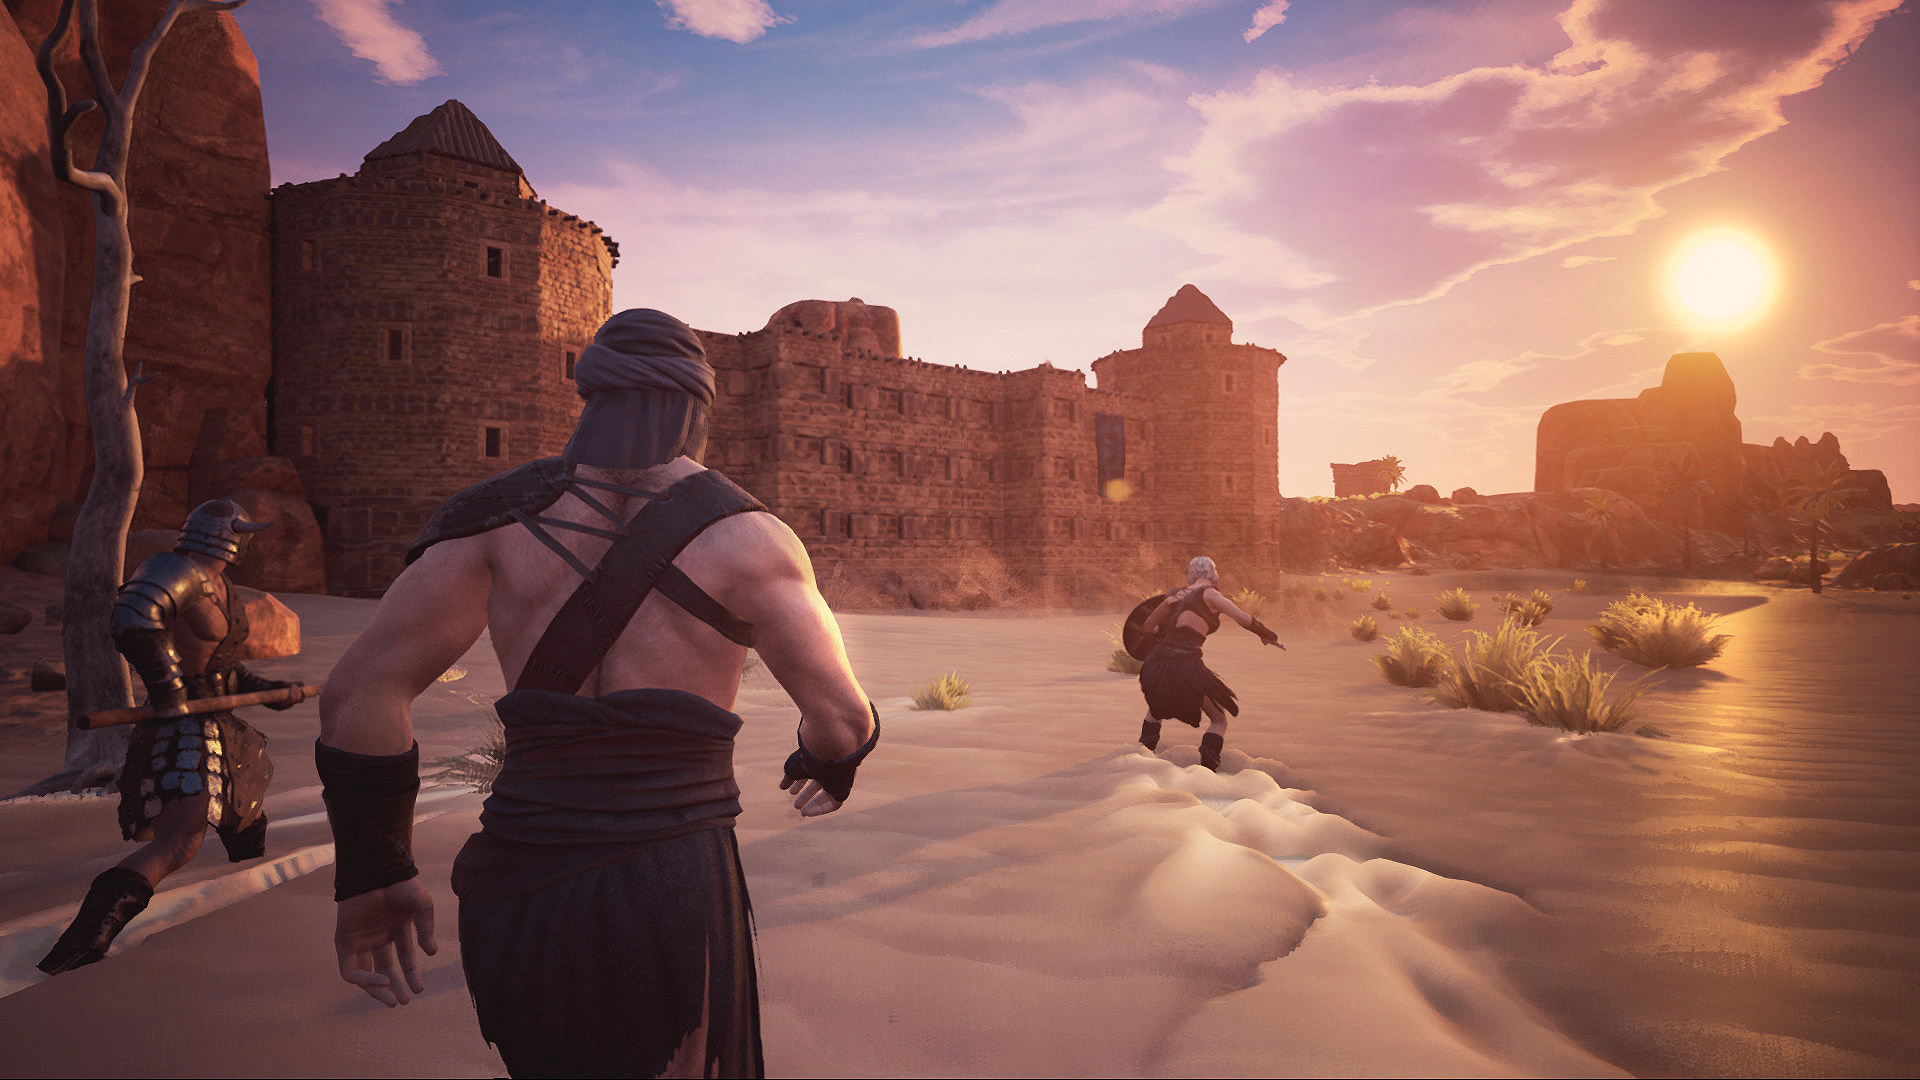 Conan Exiles Backgrounds on Wallpapers Vista